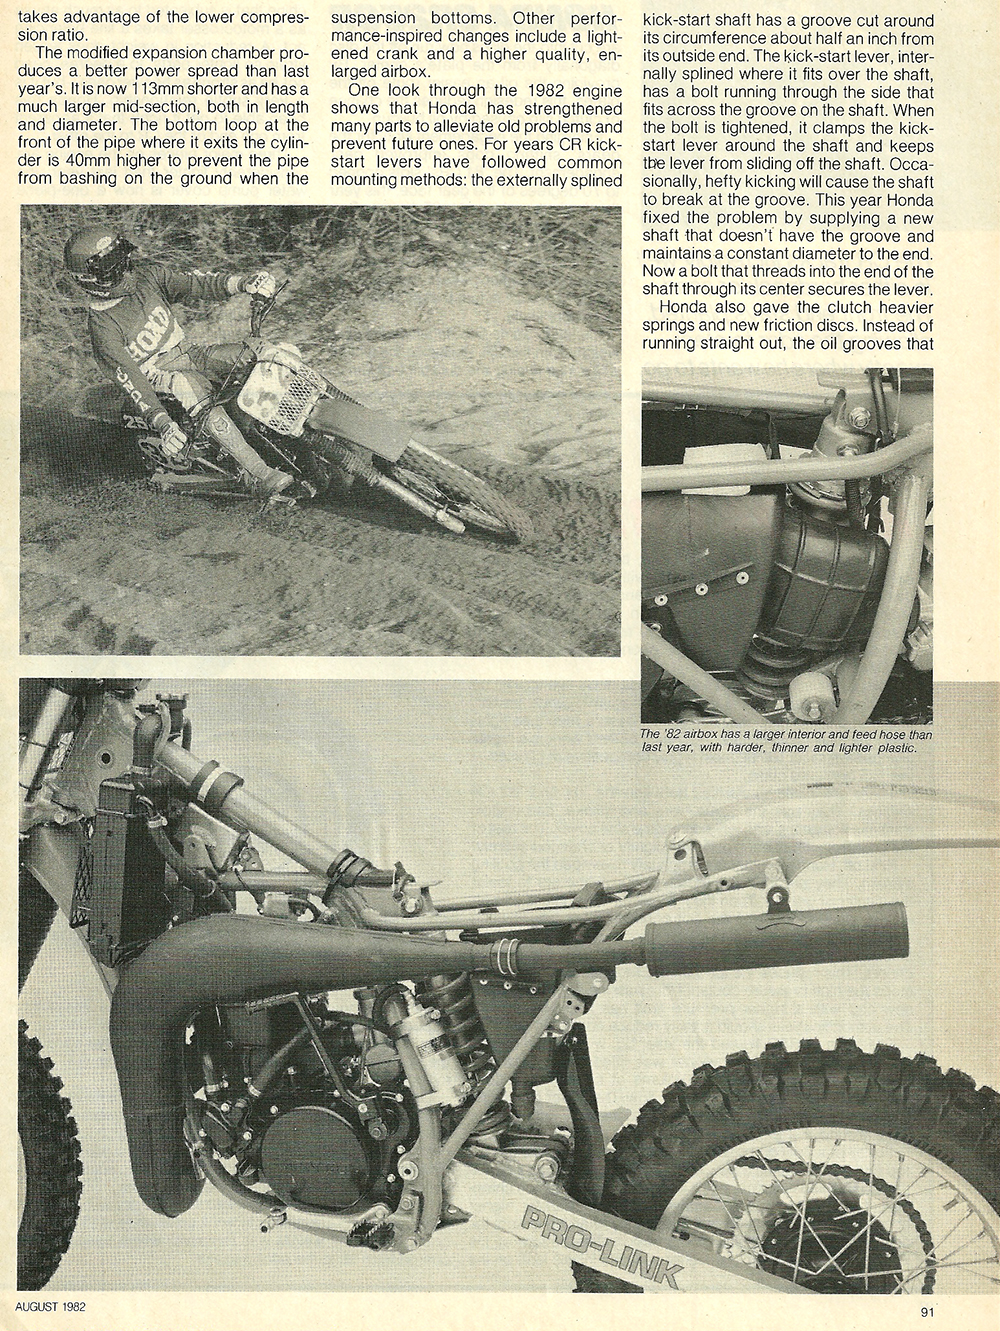 1982 Honda CR250R off road test 5.jpg